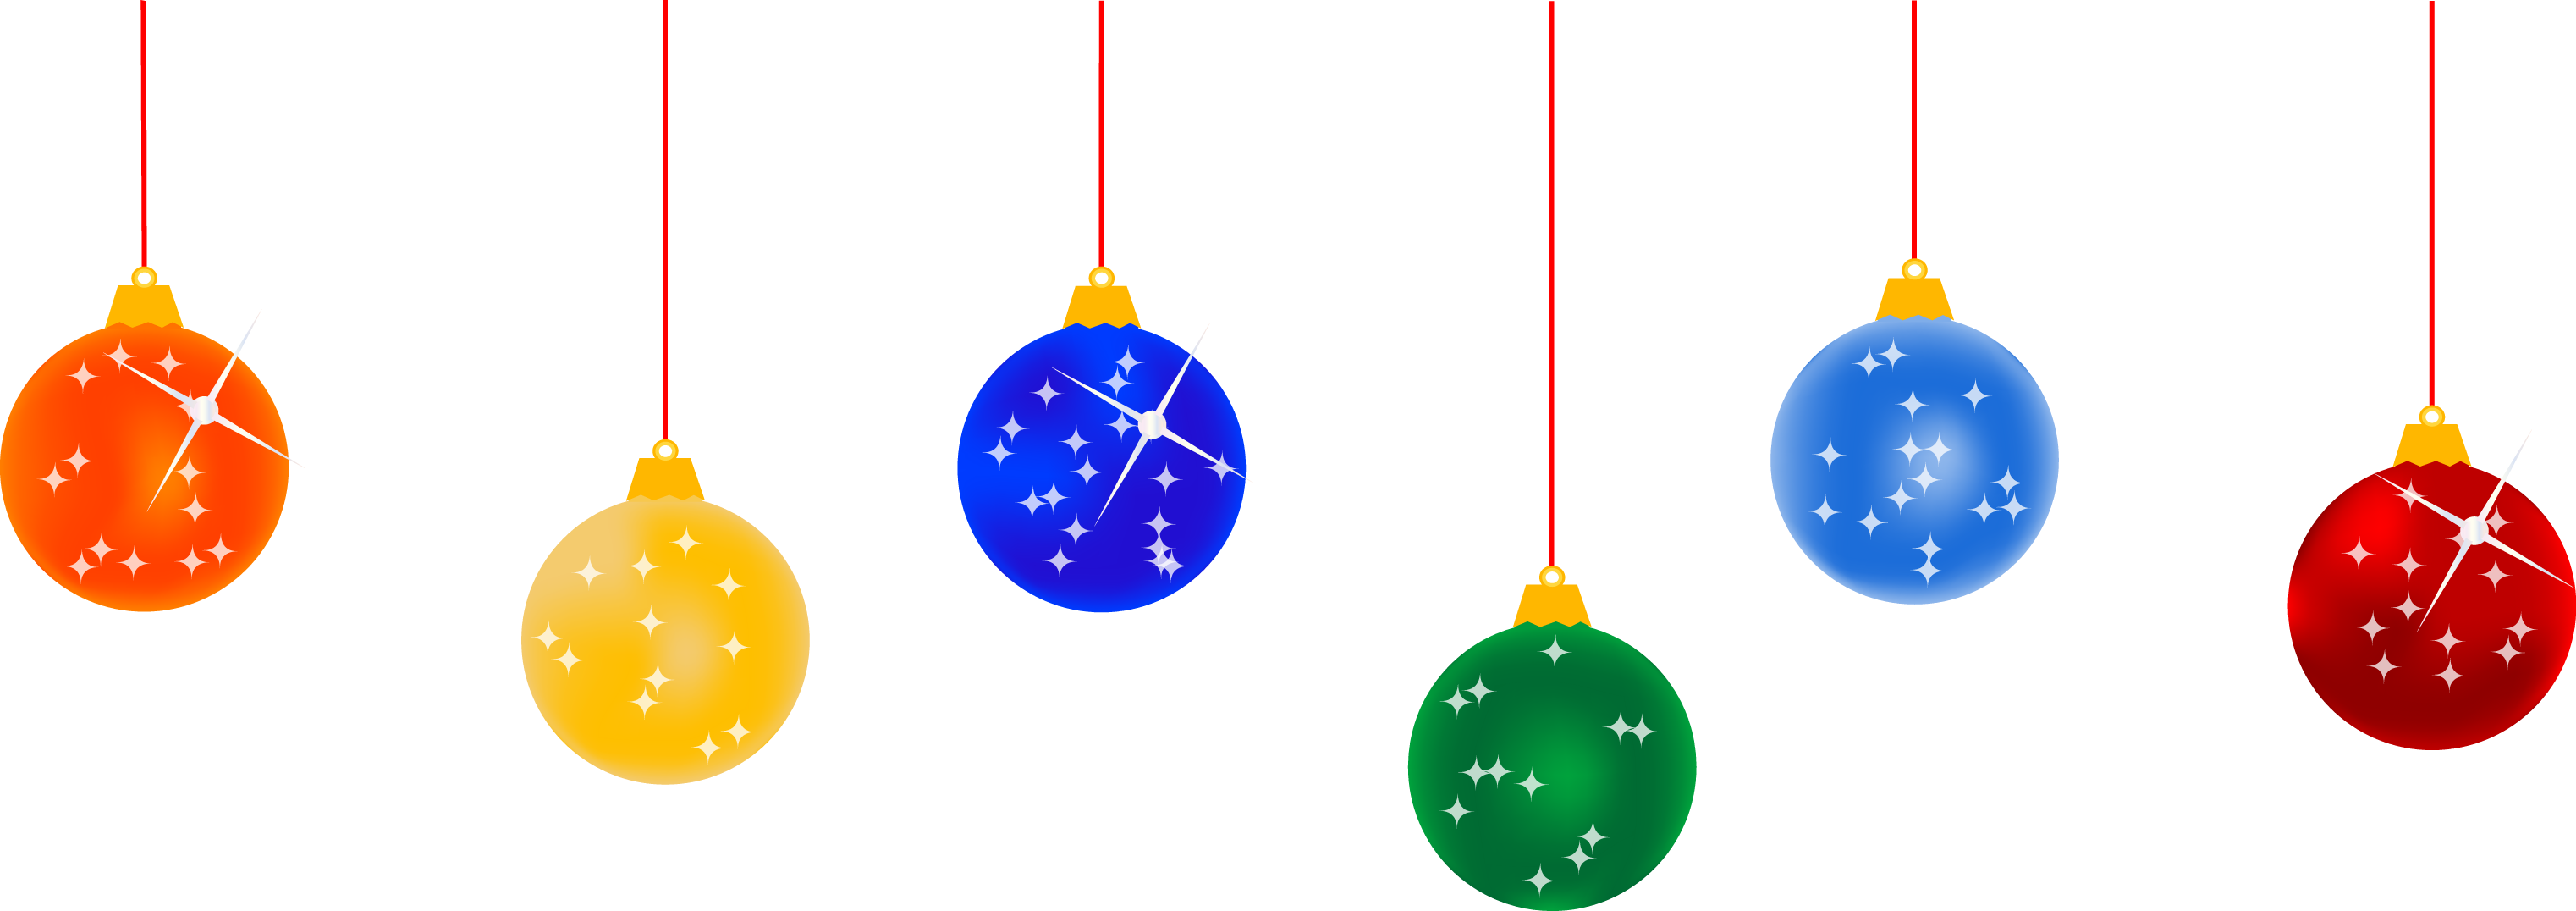 christmas gift, christmas png transparent images download clip #28084